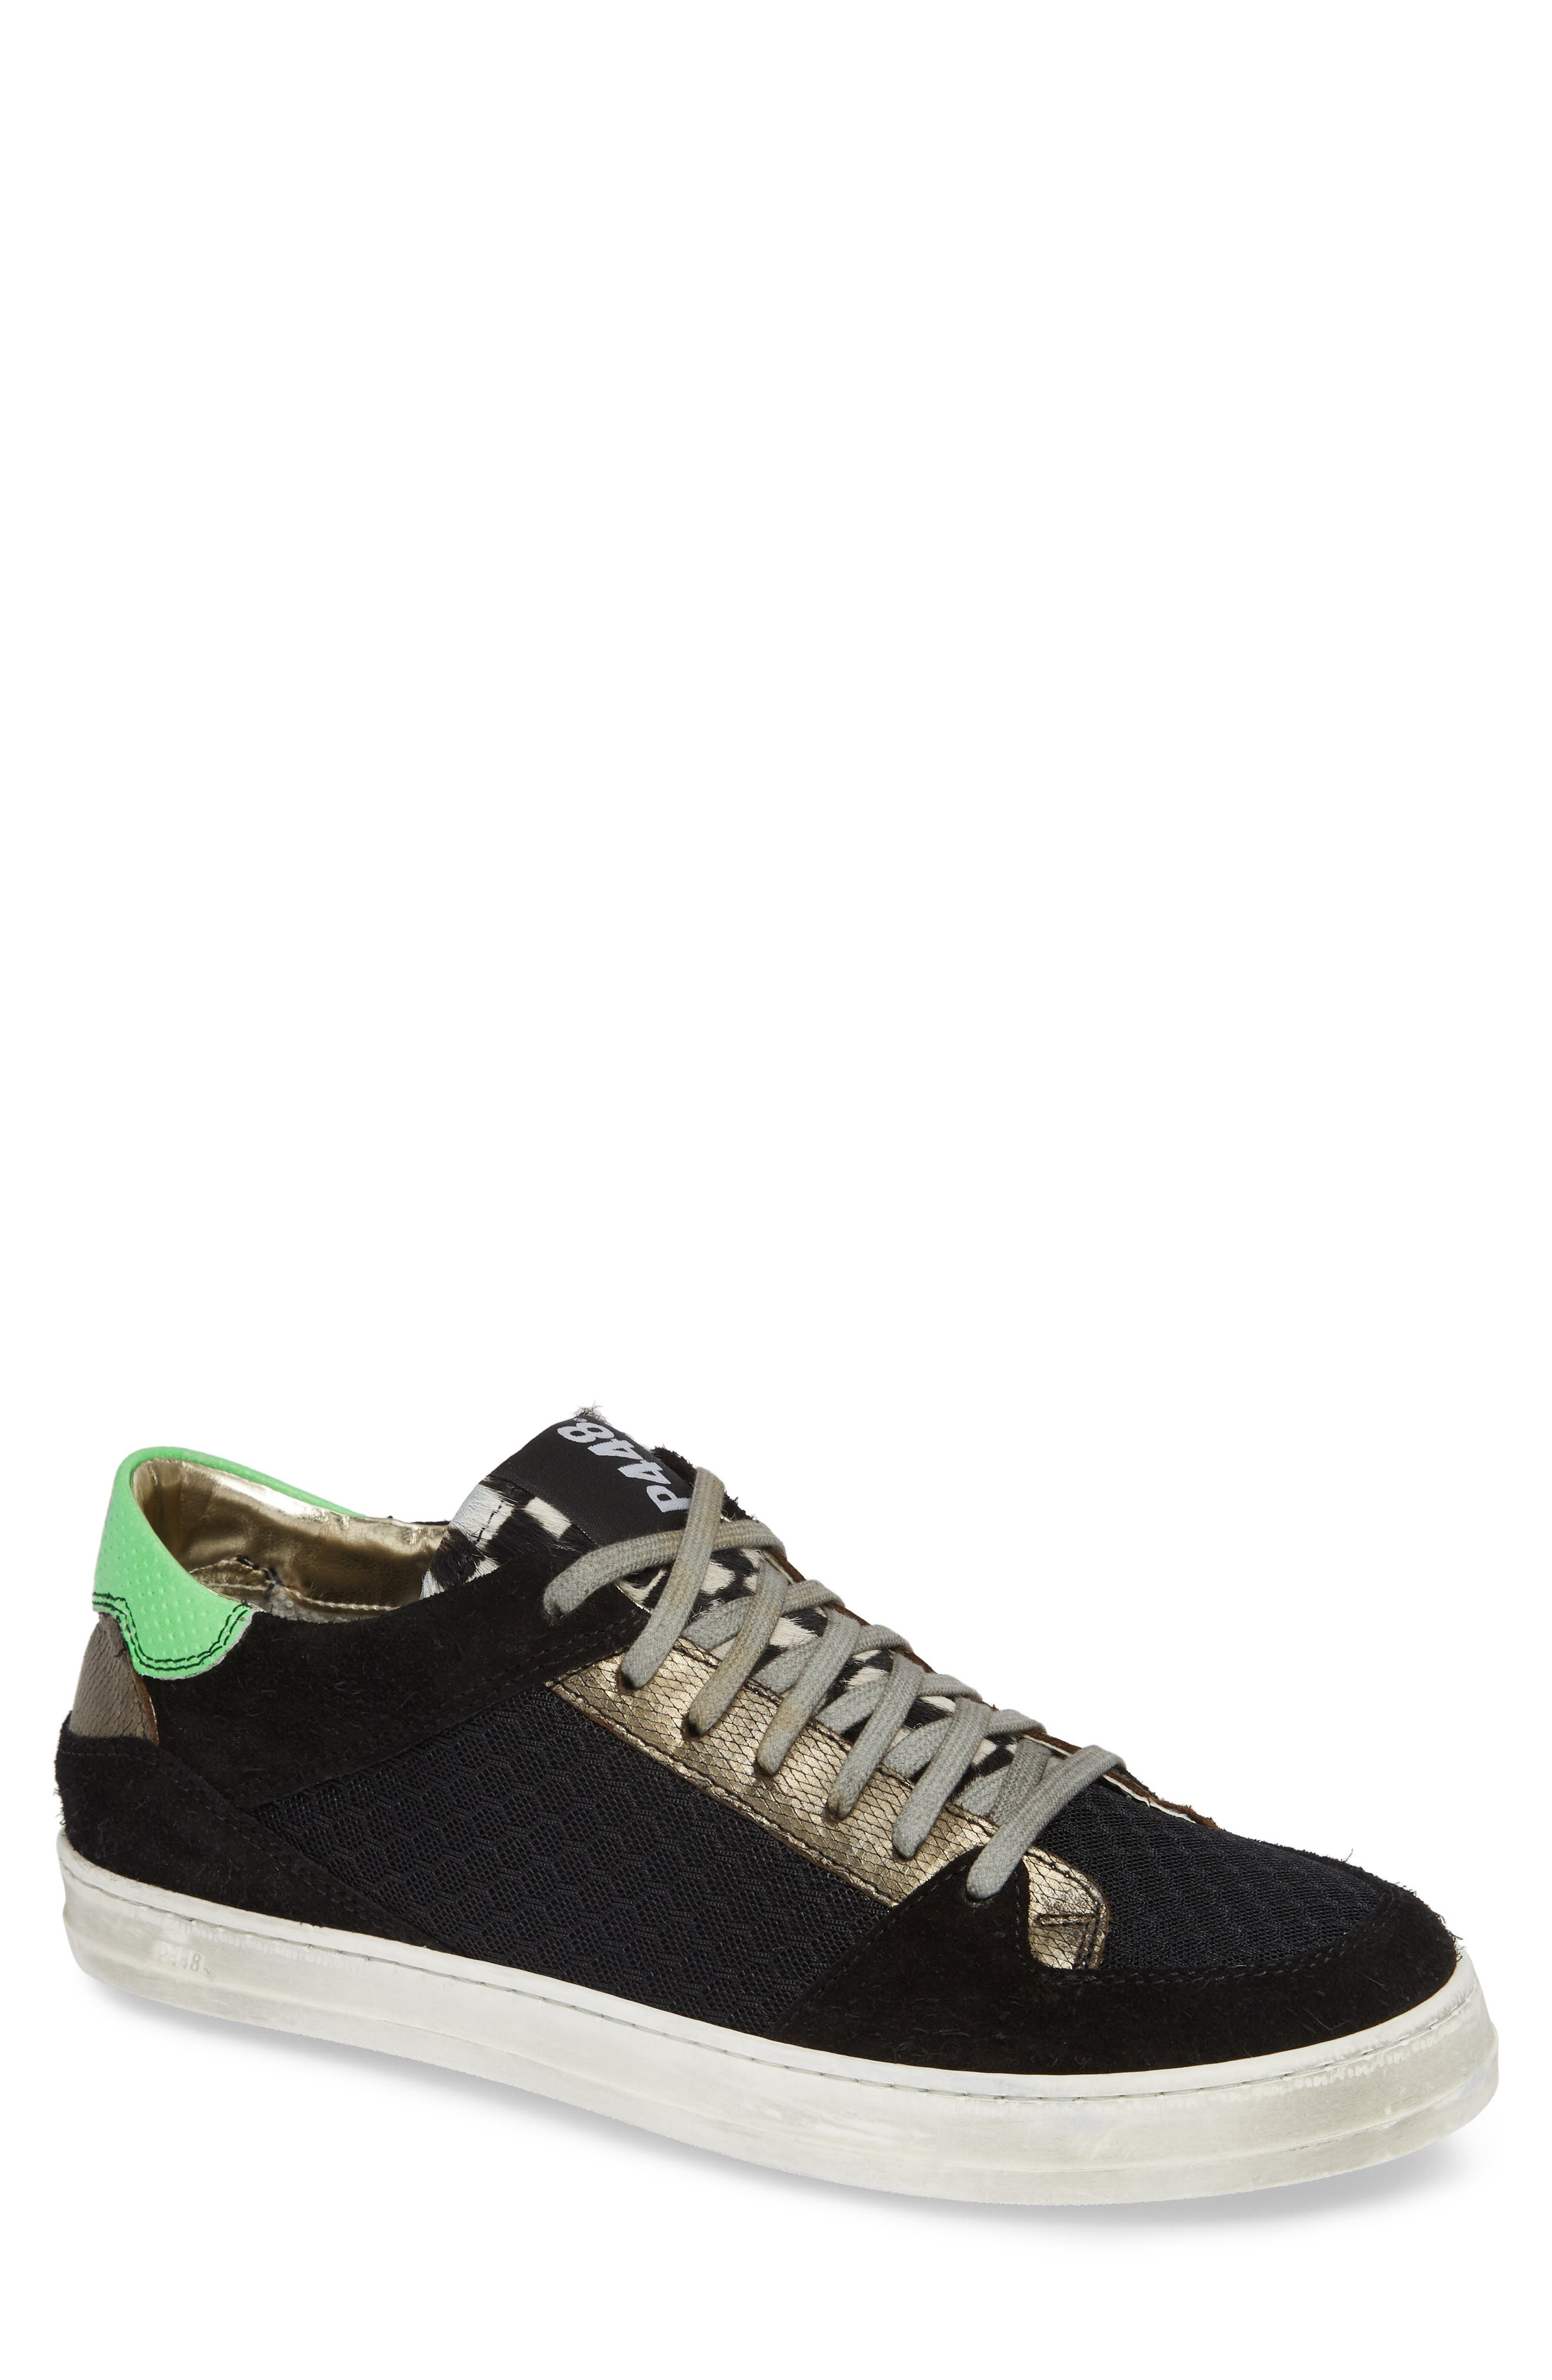 A8Queens Sneaker,                             Main thumbnail 1, color,                             BLACK